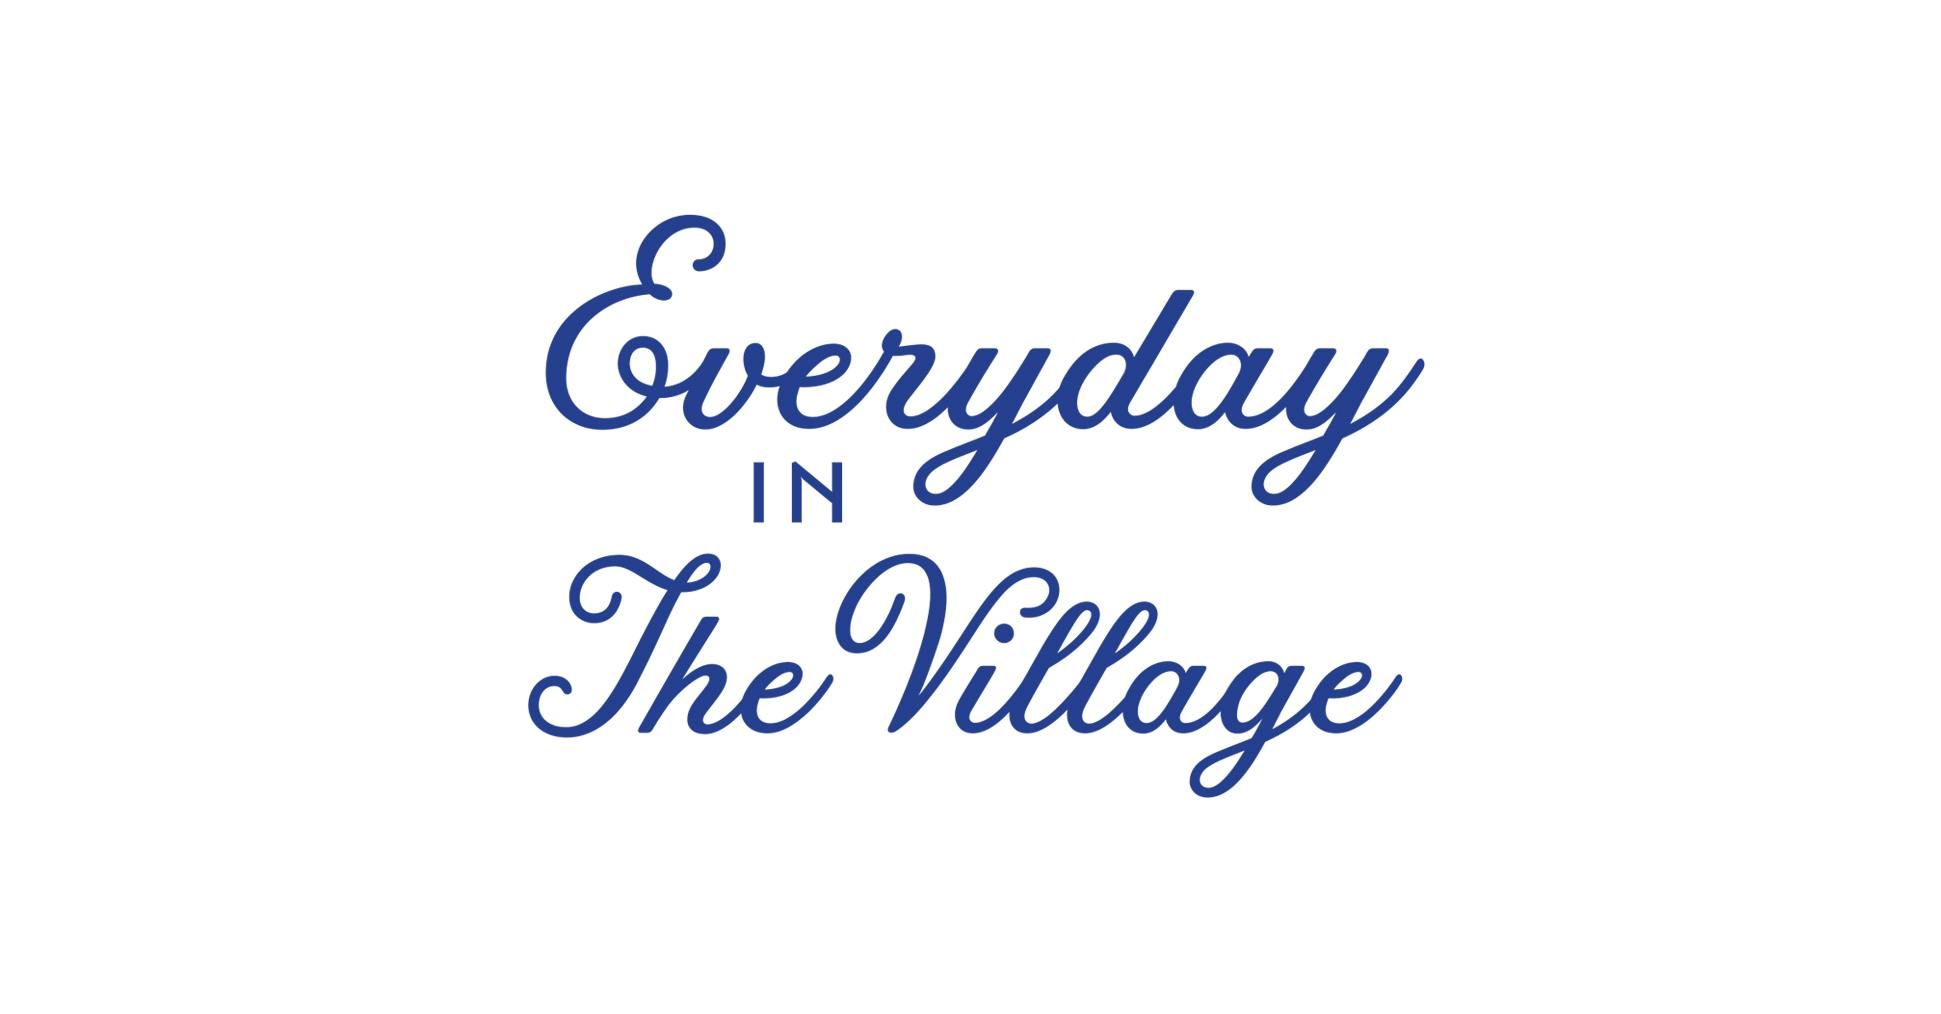 Branding campaign for Prairie Village Shops